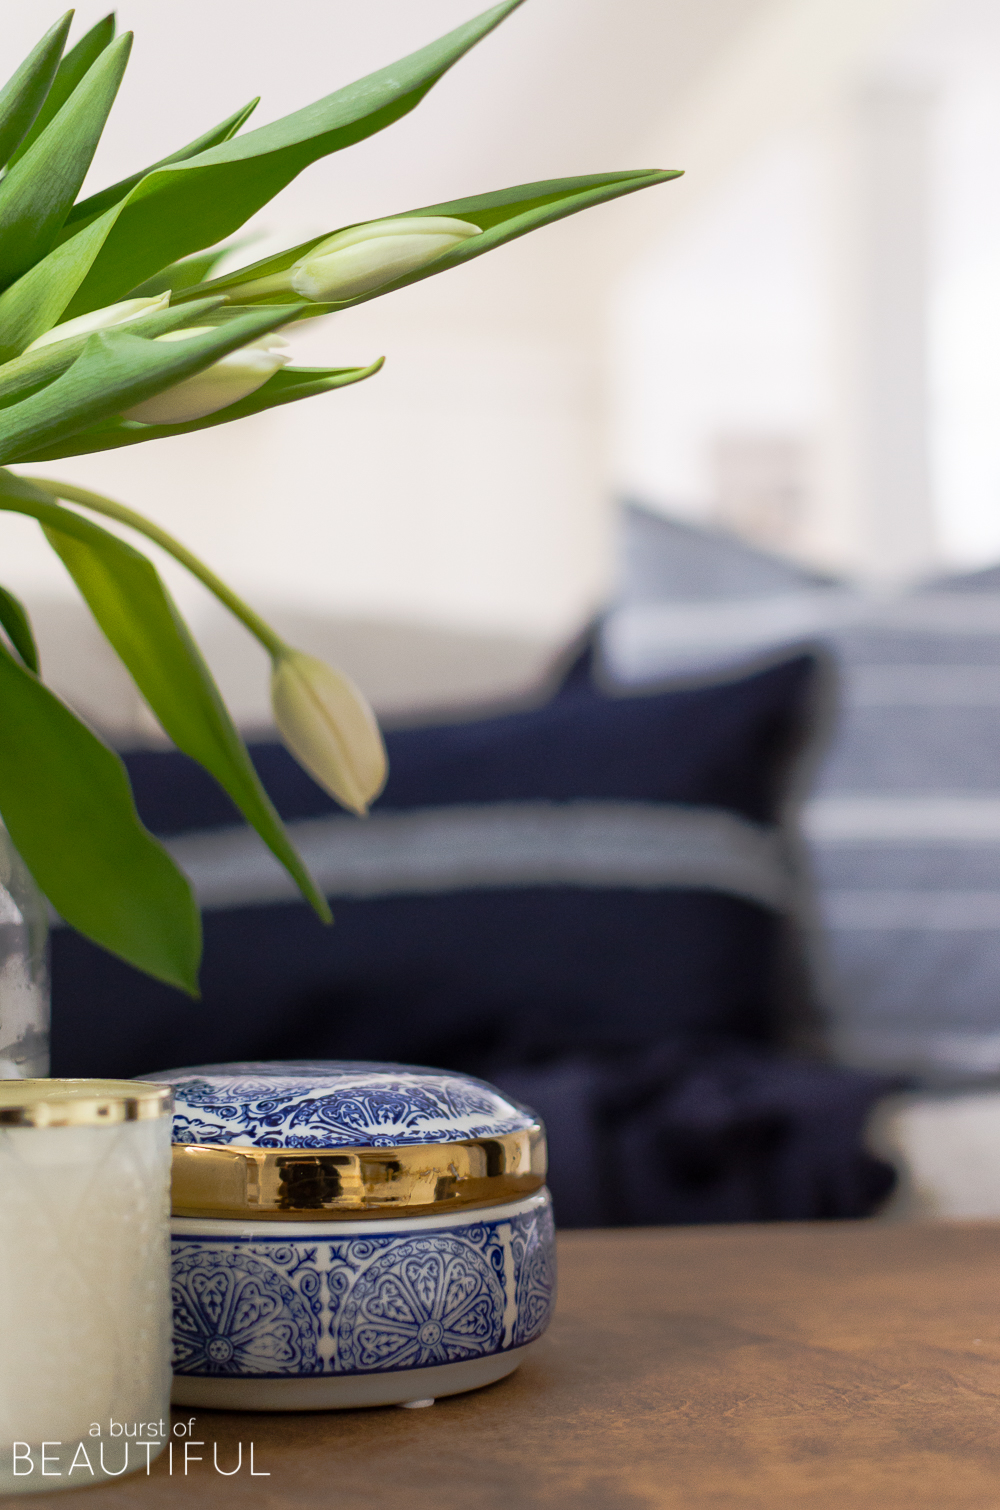 Follow these five simple habits for an organized and productive home.